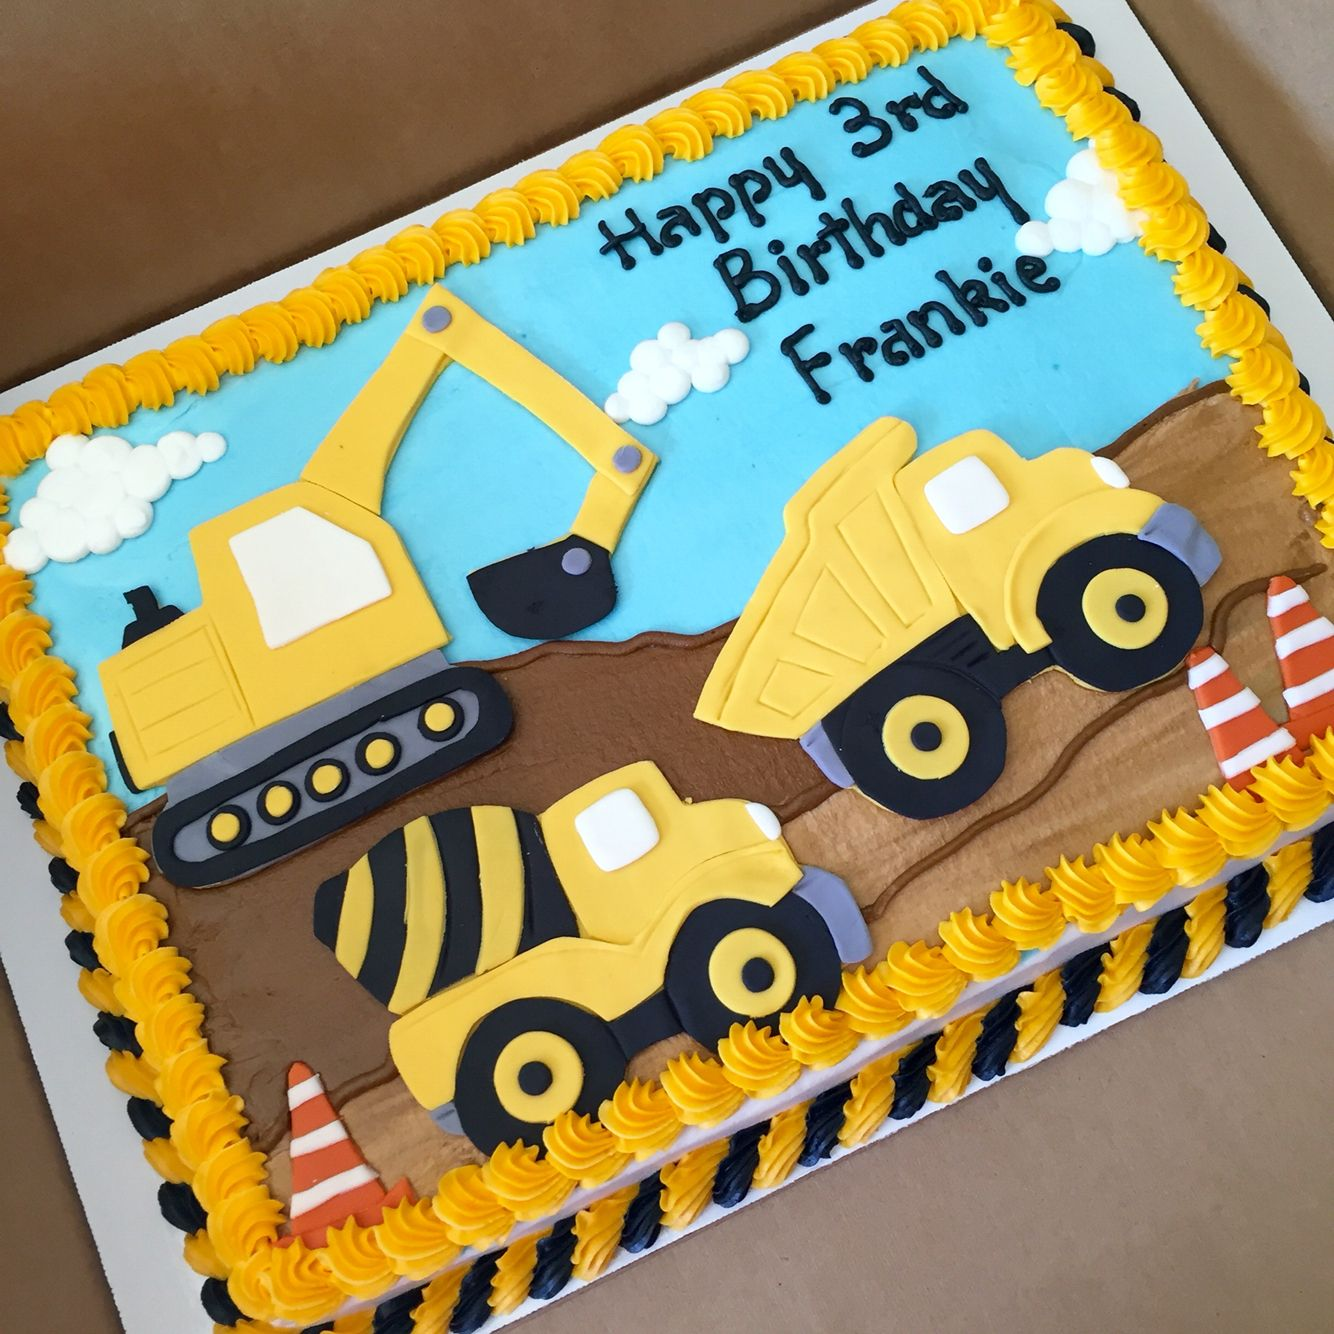 Construction Themed Cake Cakedesigns Constructioncakes